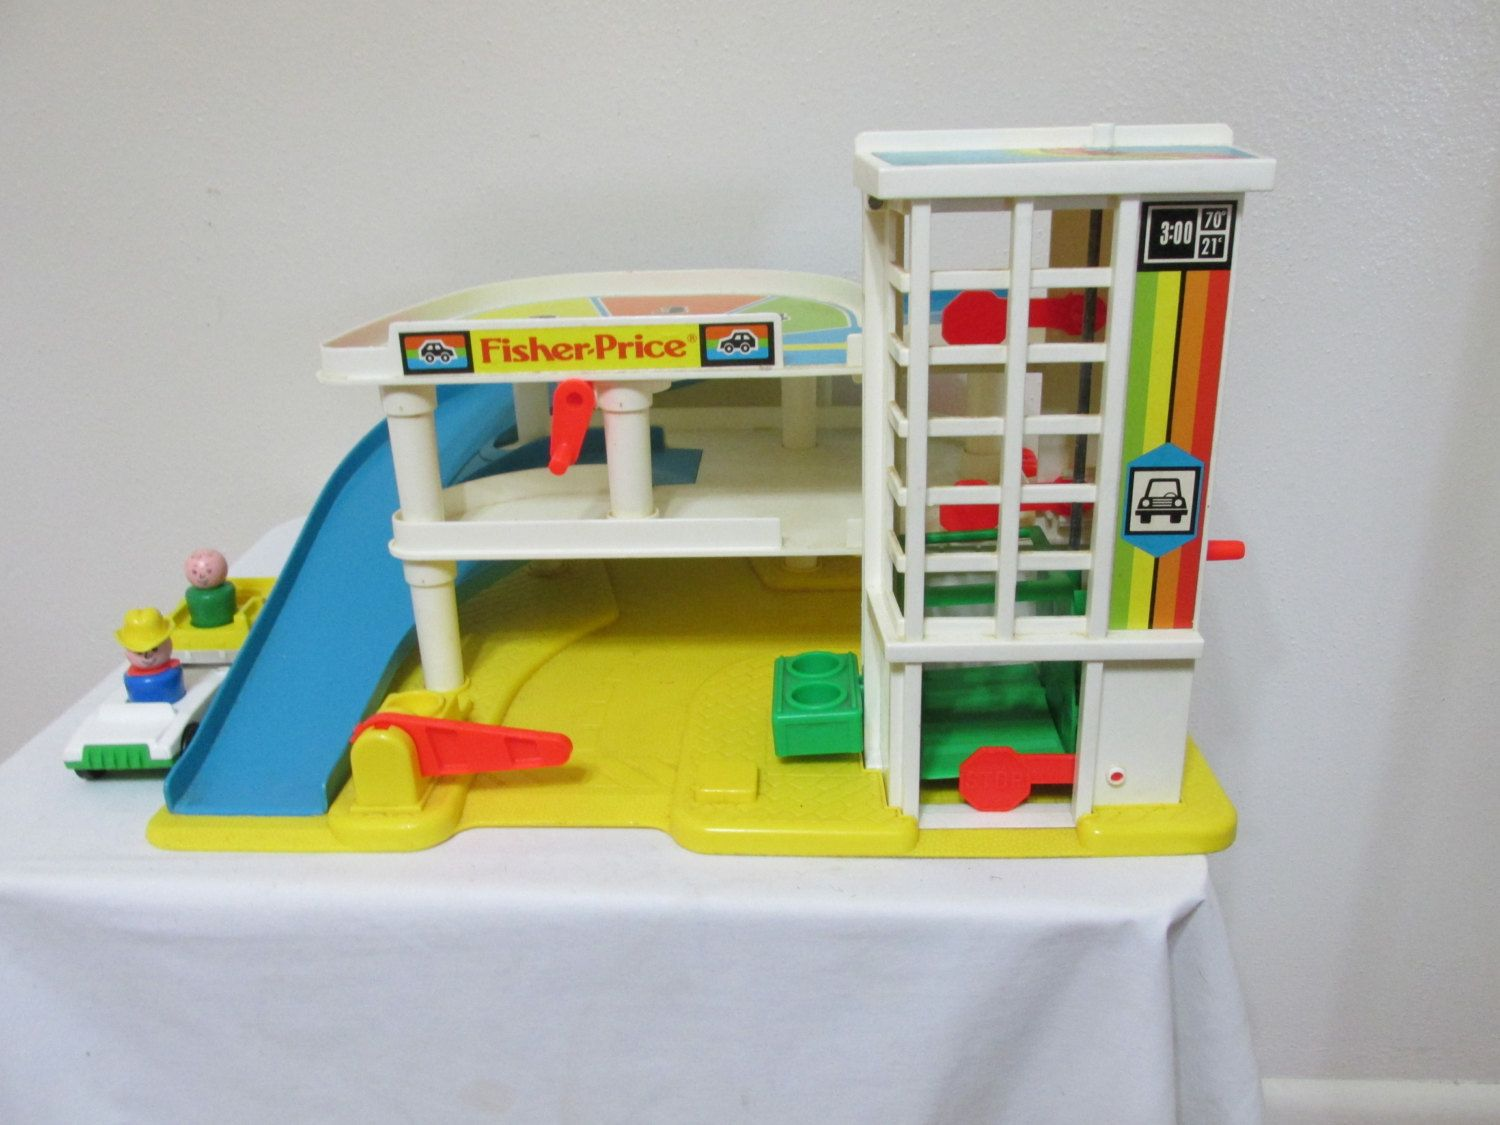 Garage Little People : Fisher price garage little people and cars 1987 by luruuniques on